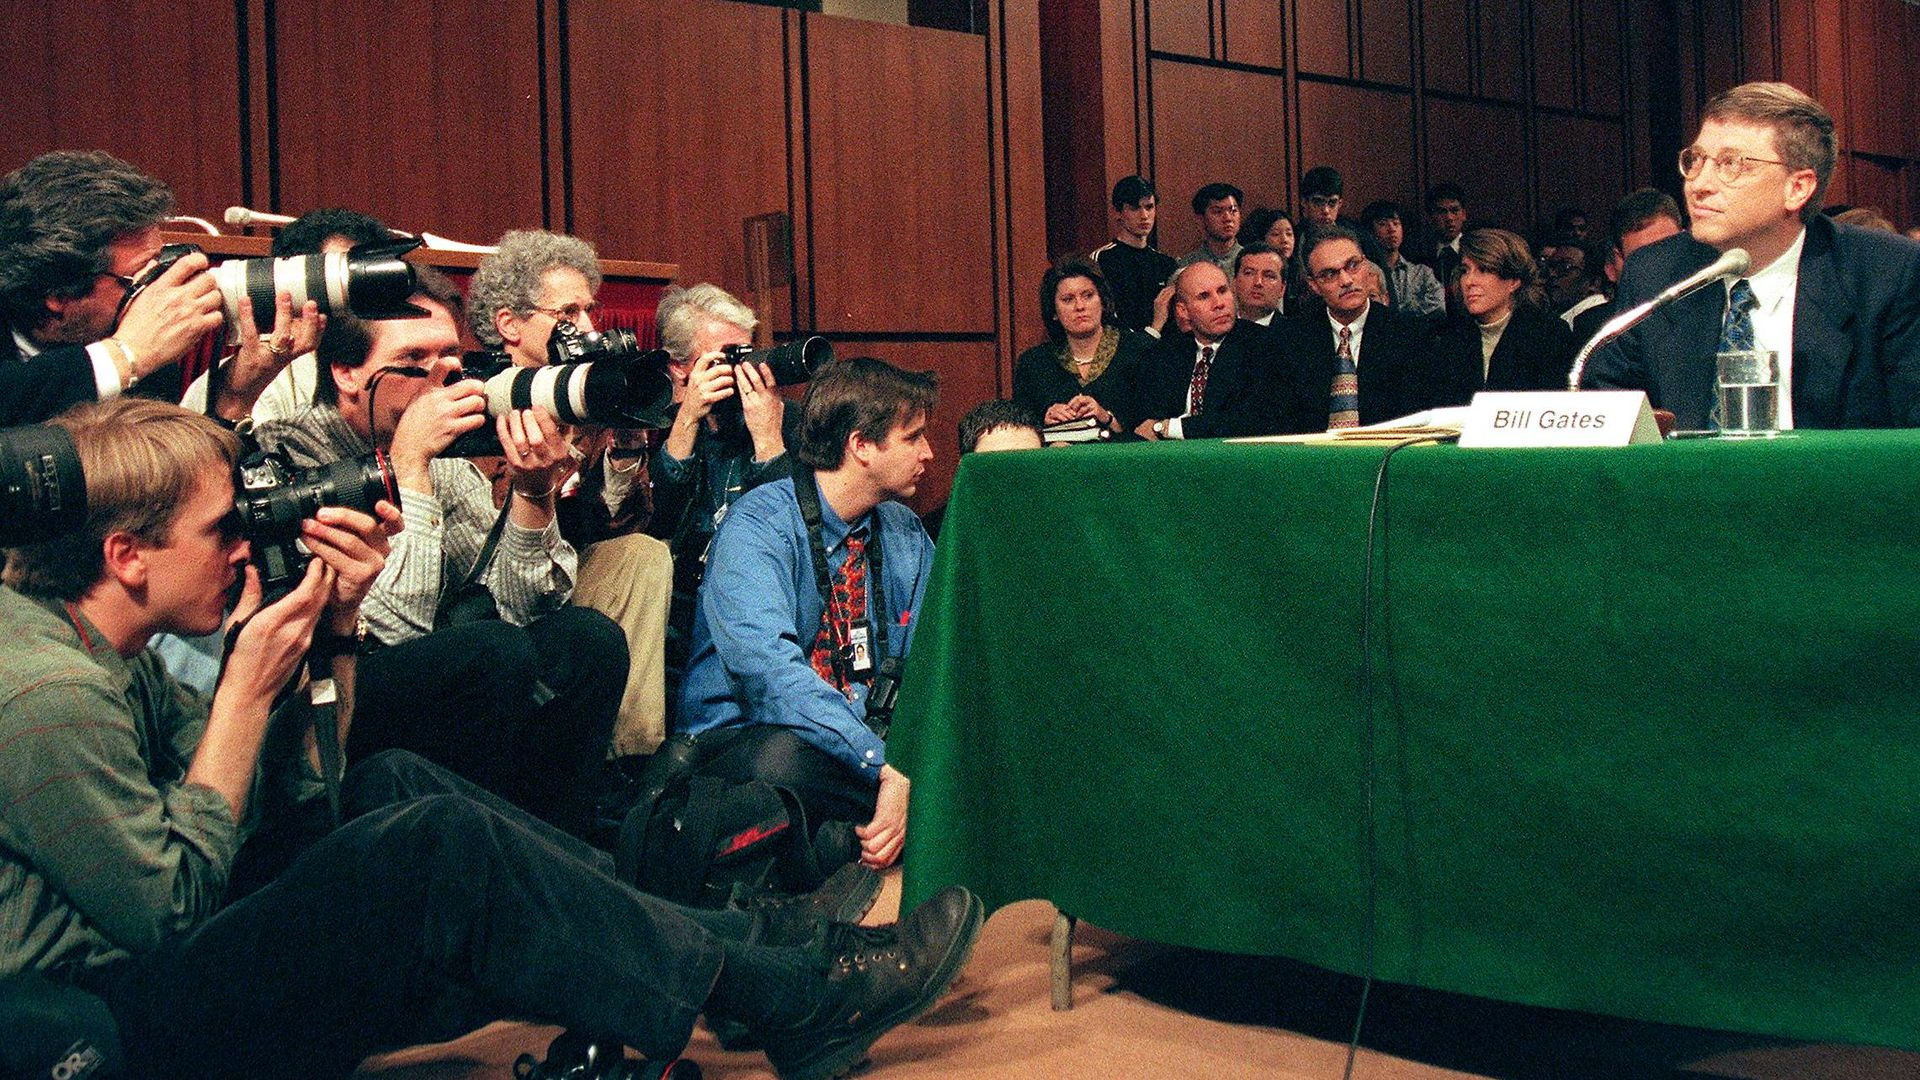 Bill Gates testifying in the 1990s